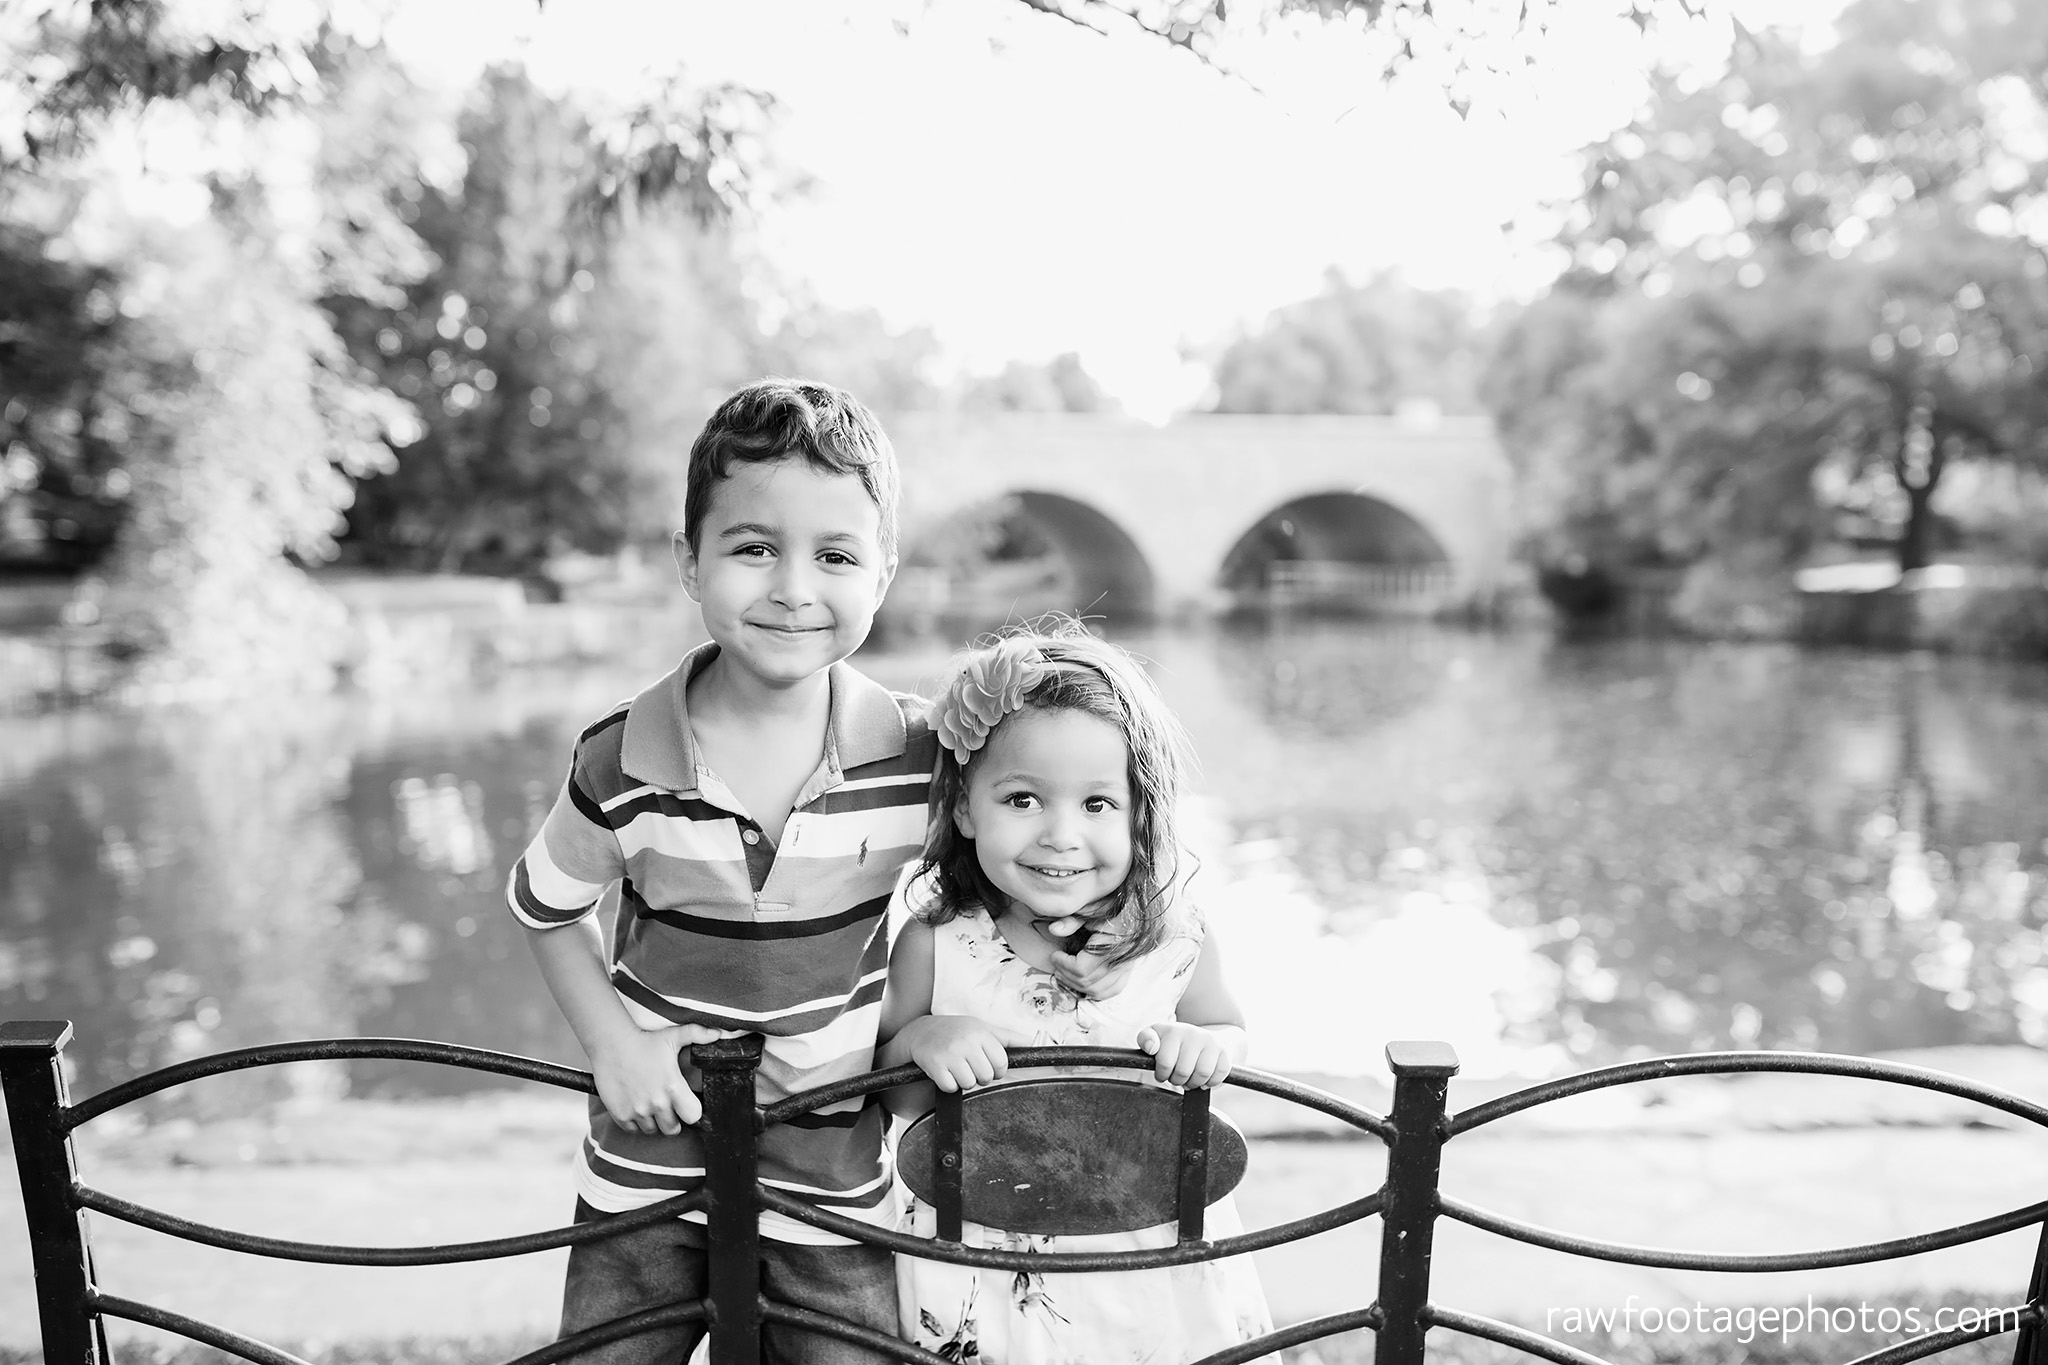 london_ontario_family_photographer-stratford_ontario_photographer-raw_footage_photography-lifestyle_photography-candid-golden_hour015.jpg